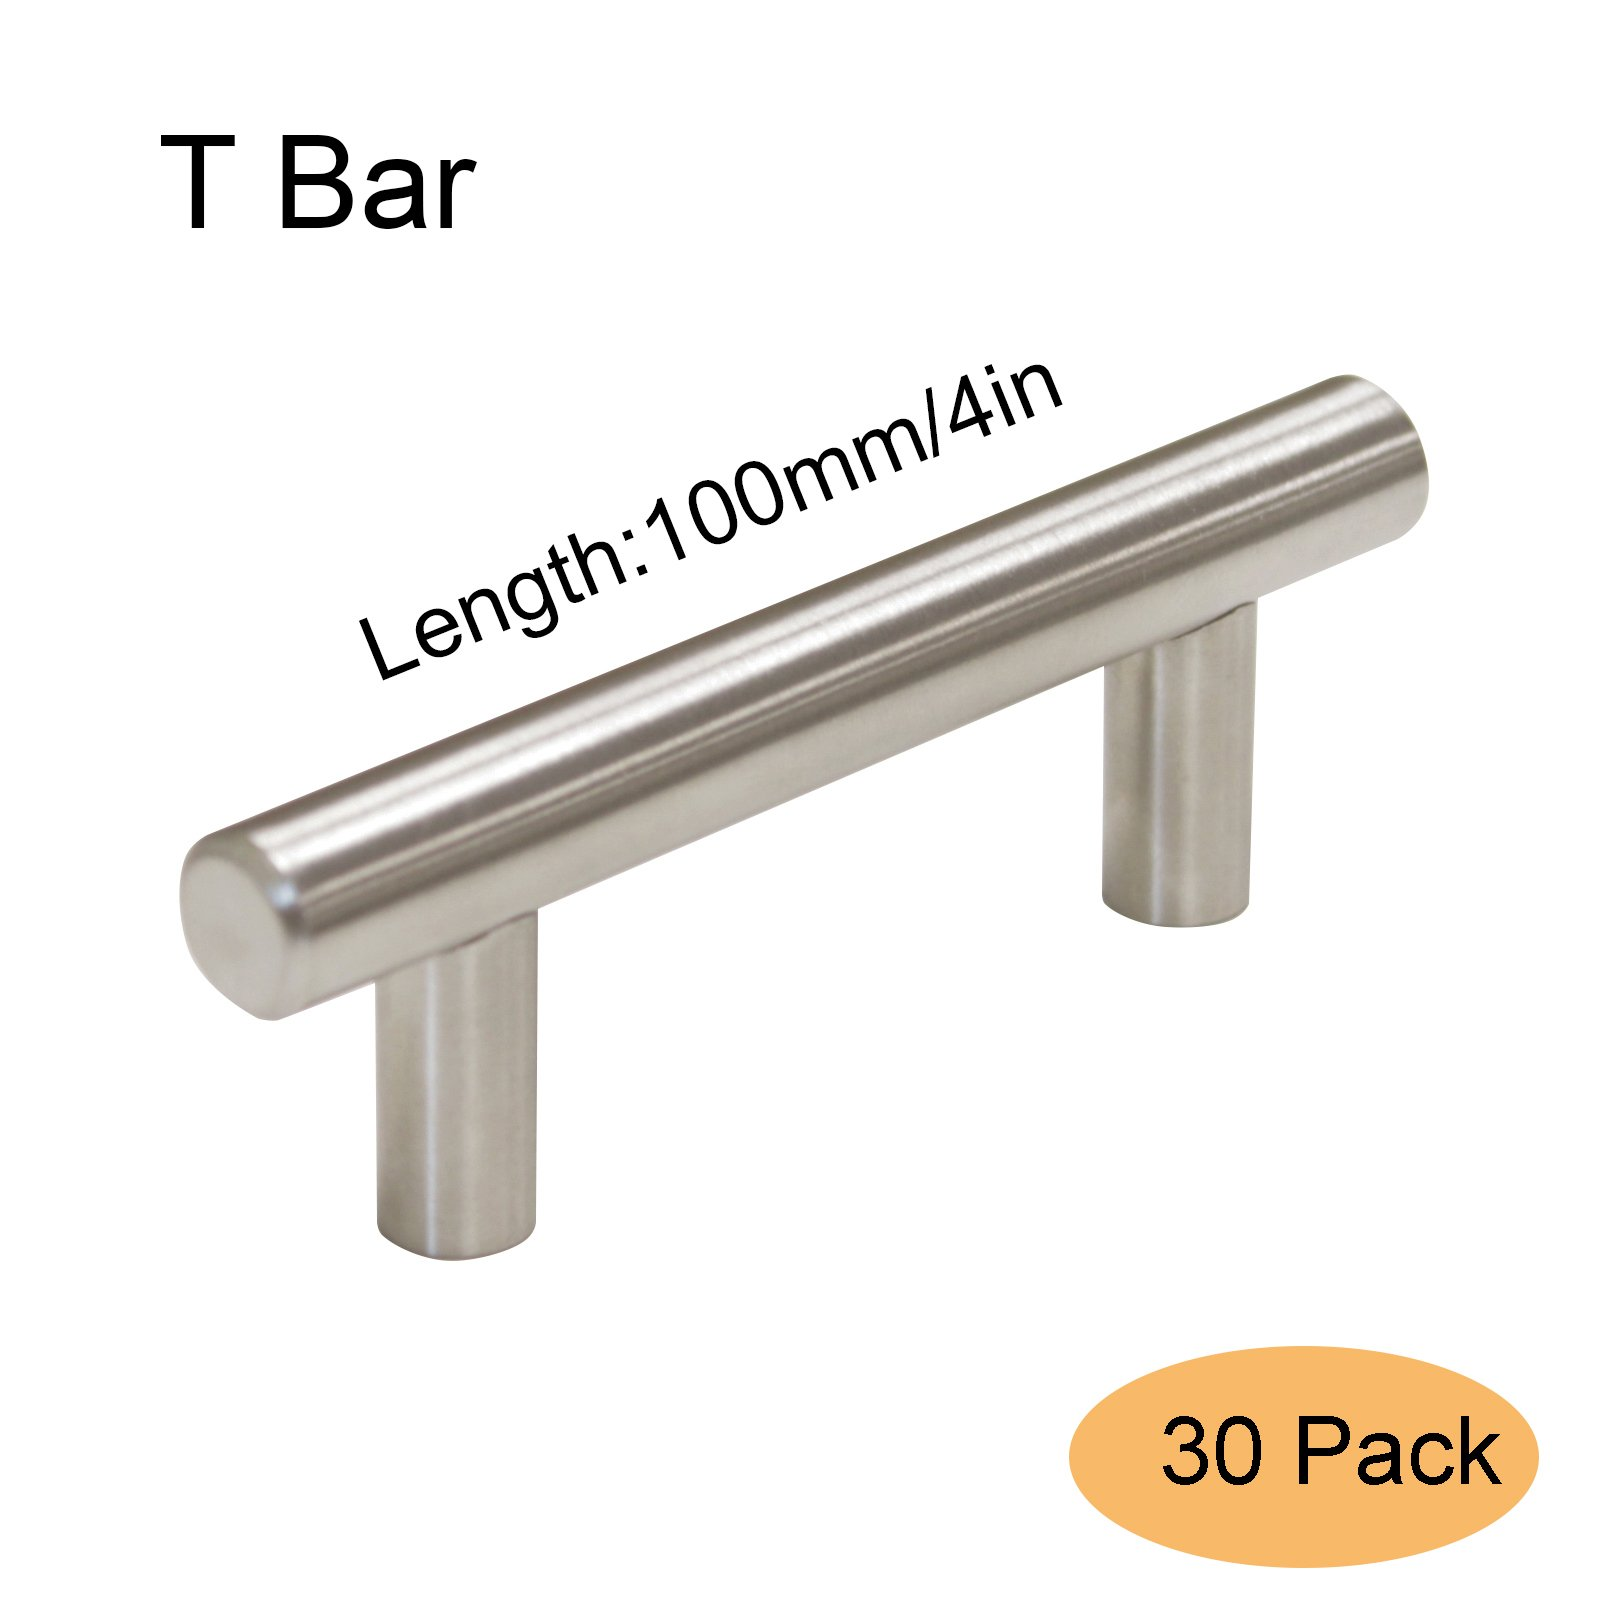 Gobrico 2.5in Hole Center Brushed Stainless Steel T Bar Door Handles 4in Overall Long Euro Style Kitchen Cabinet Drawer Pulls Knobs 30Pack by Gobrico (Image #1)